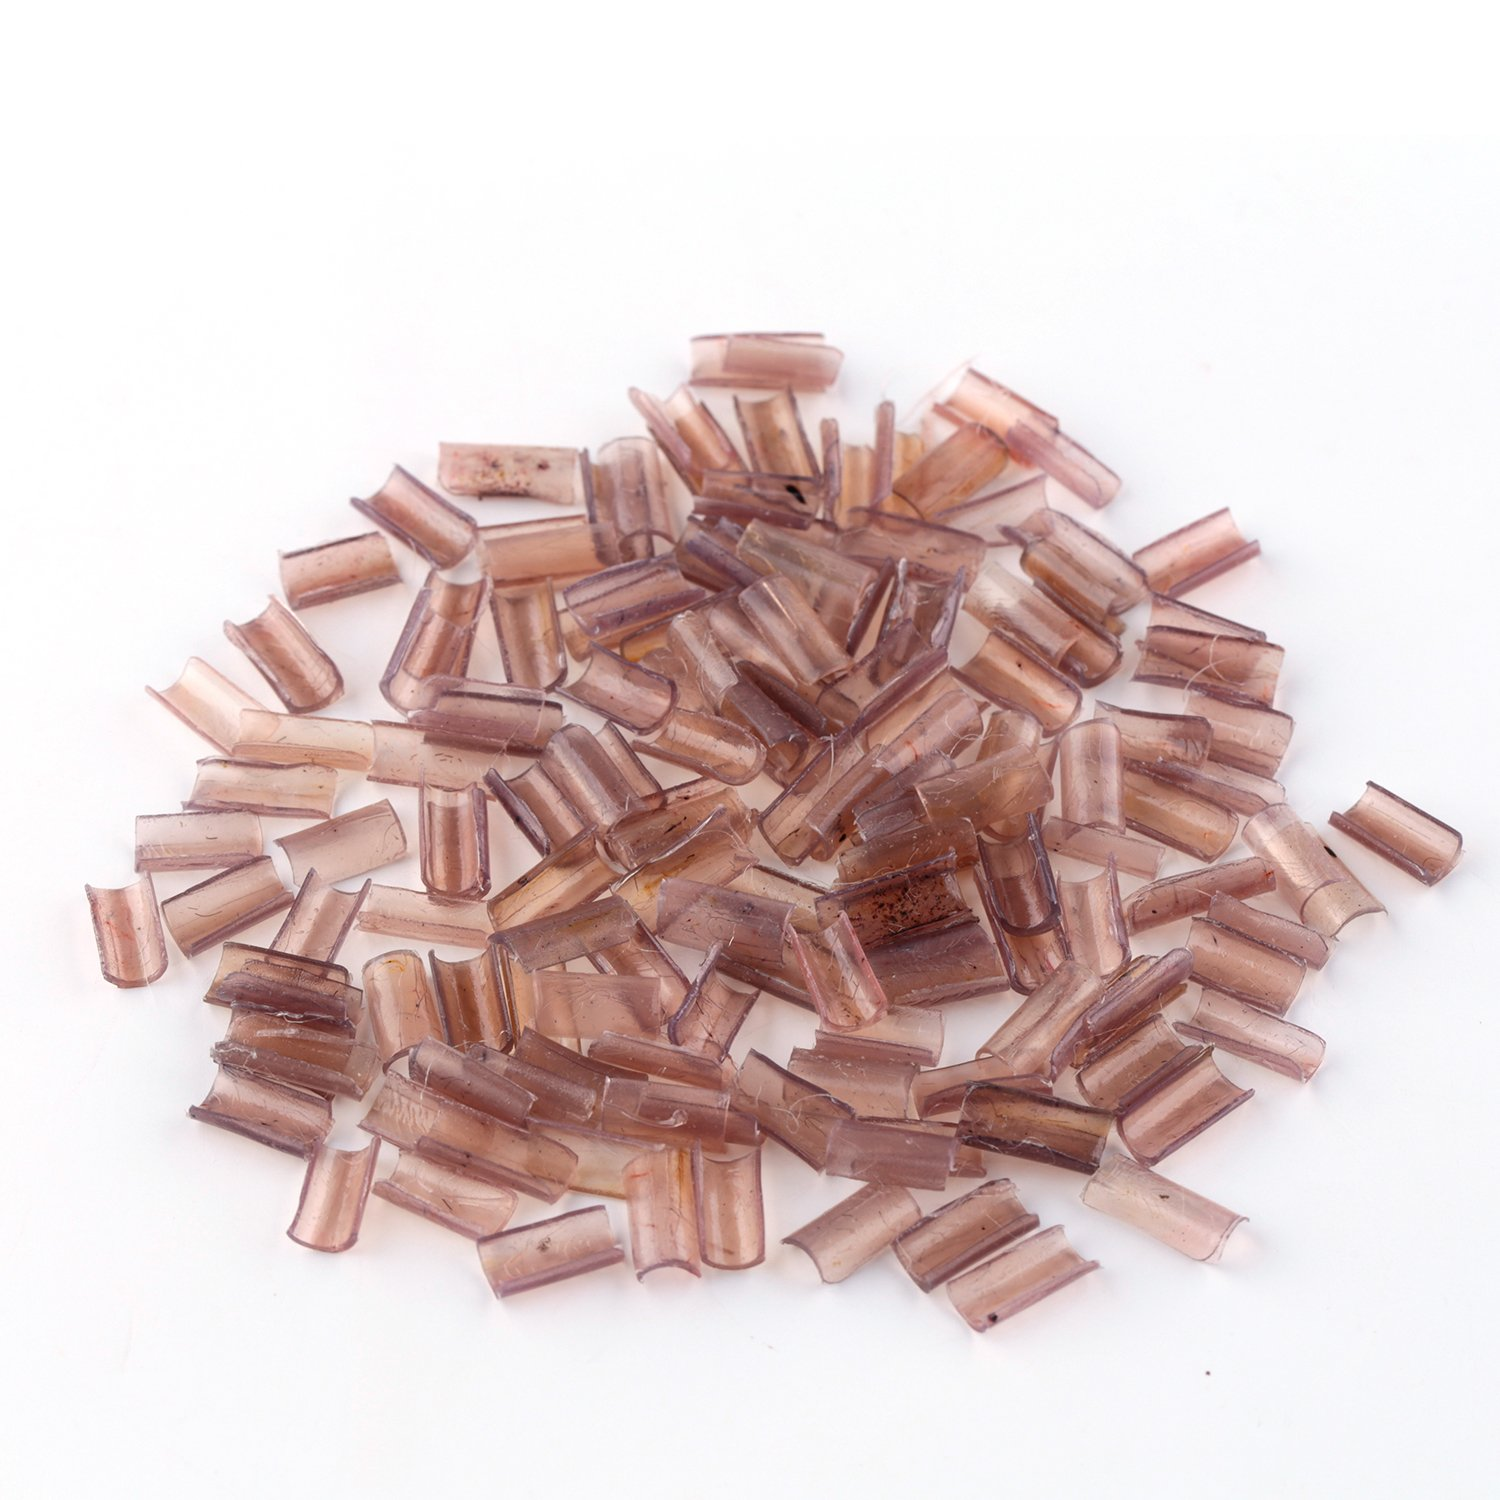 50PCS Keratin Fusion Nail U Tips Granules Glue Rebonds for U/Nail Tip Hair Extensions (Black) Haoshan